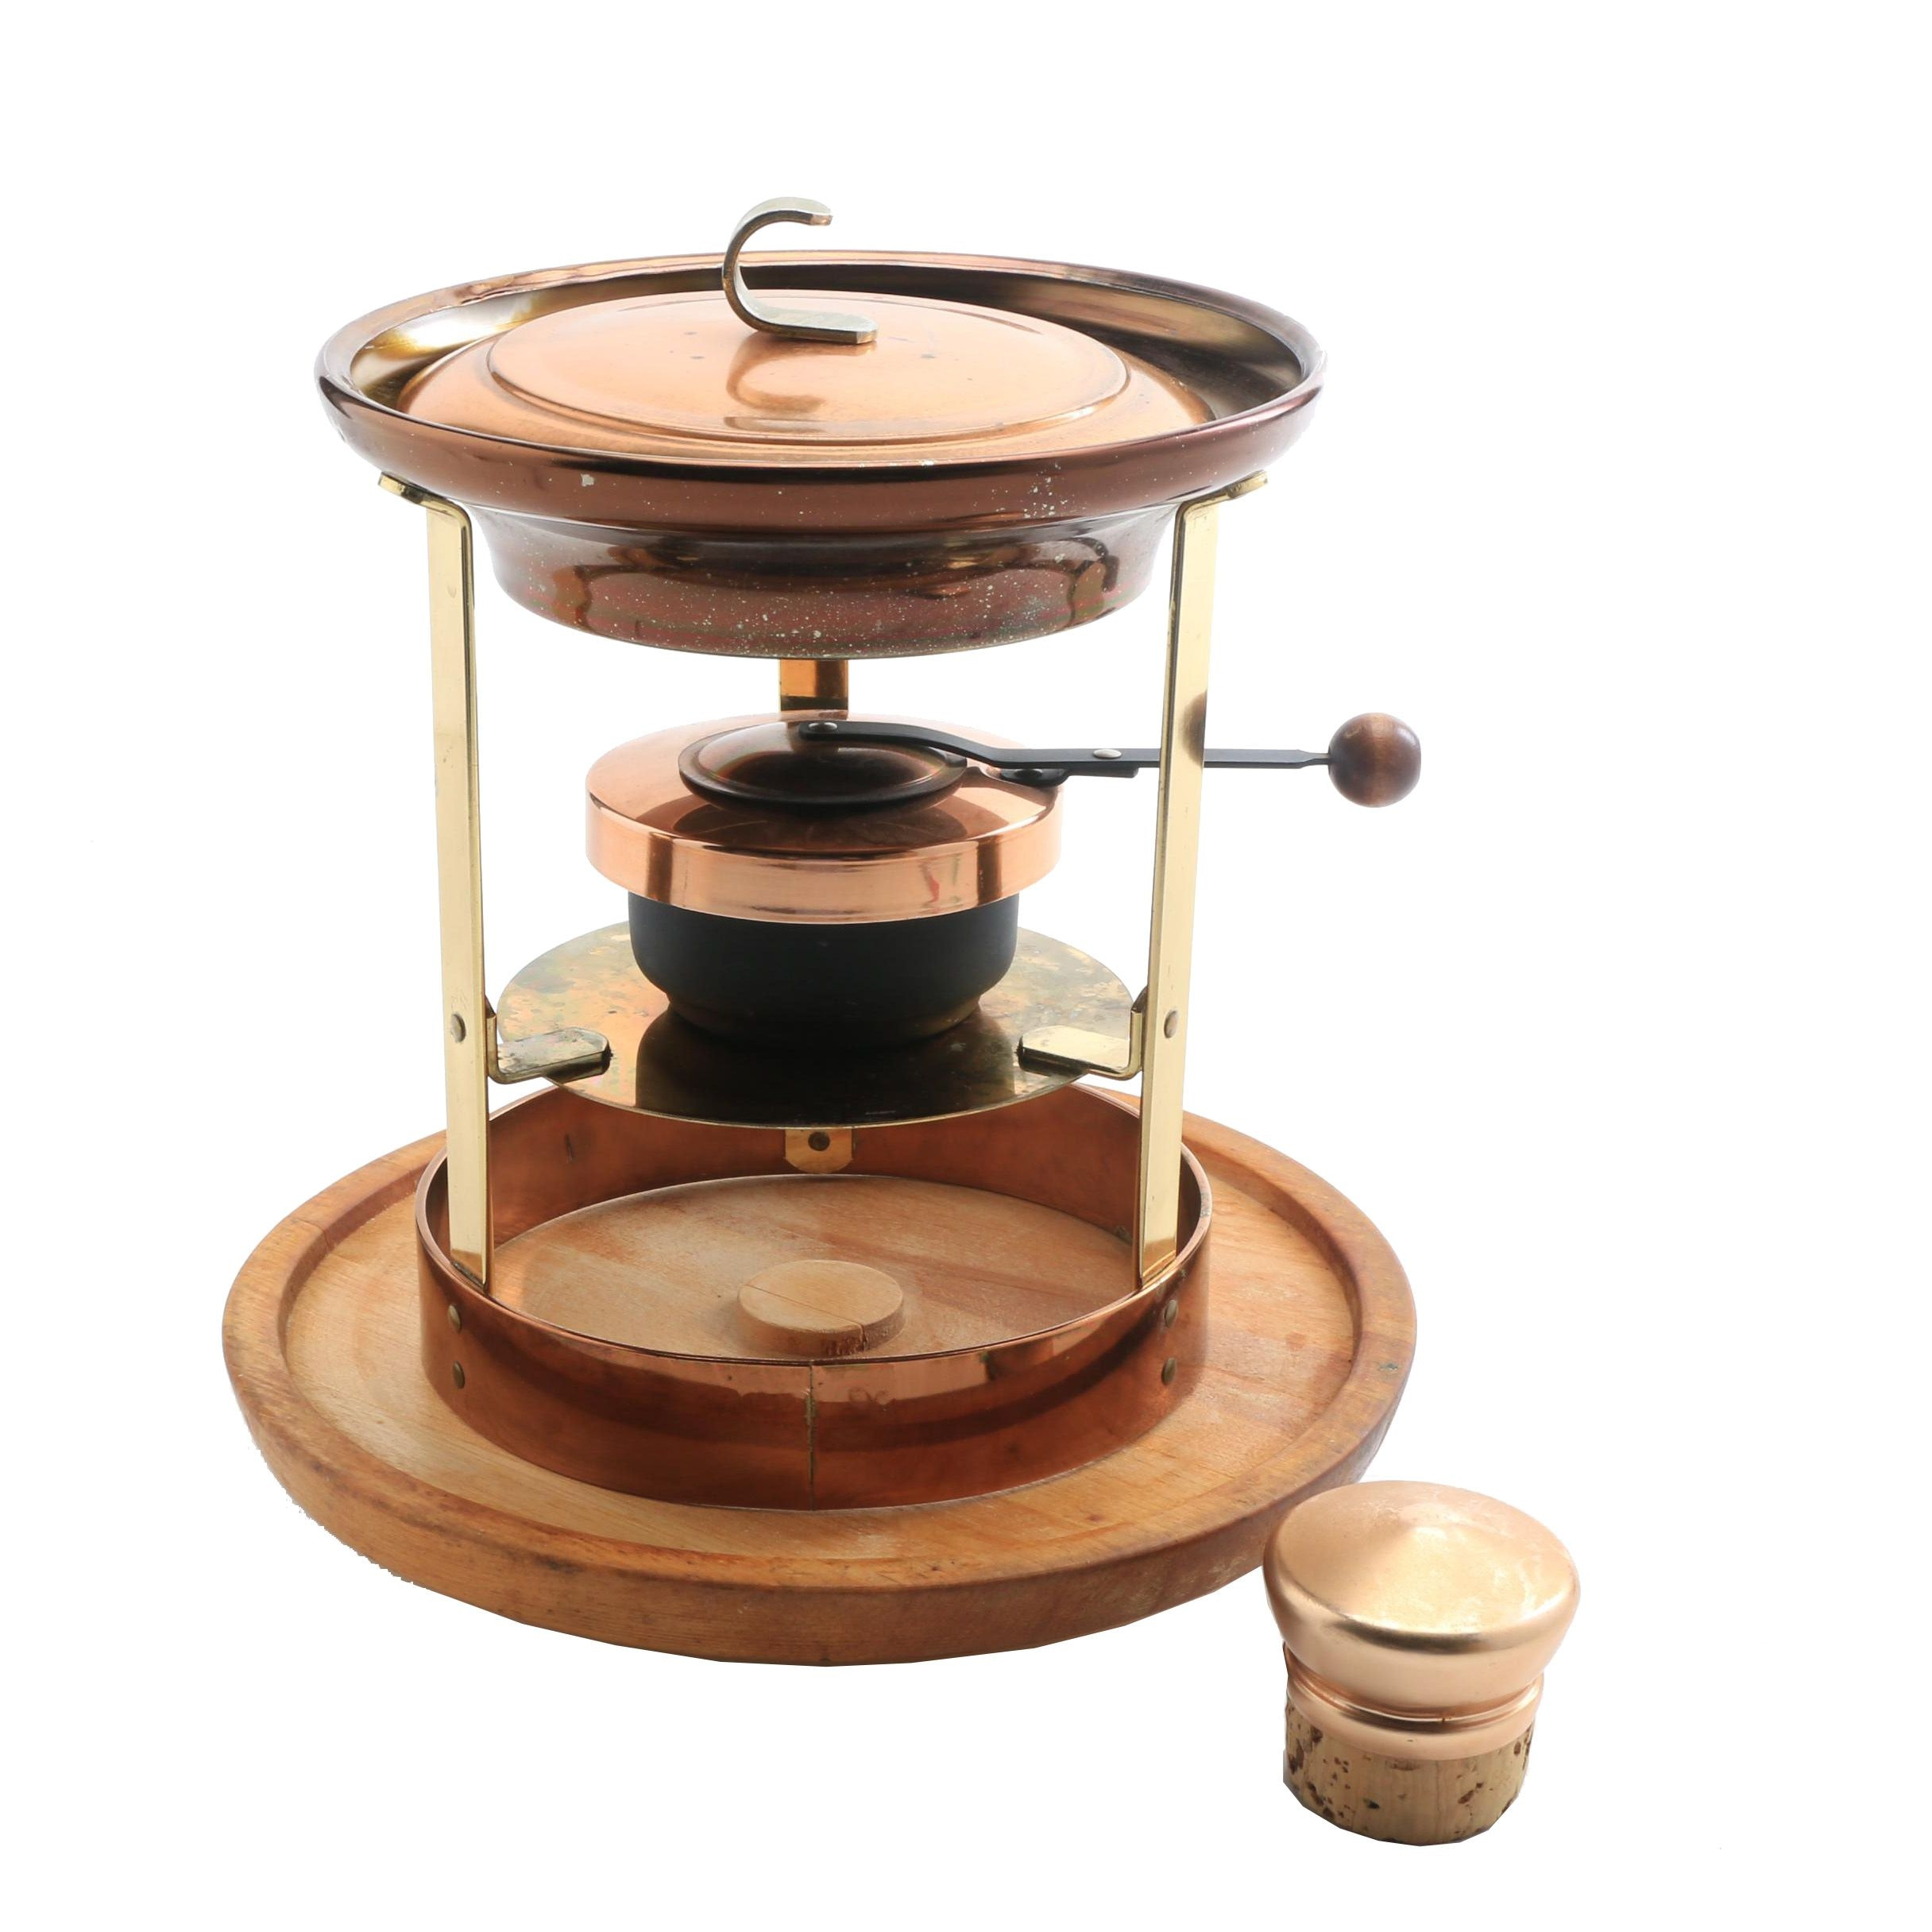 copper and brass fondue stand and carved wood lazy susan